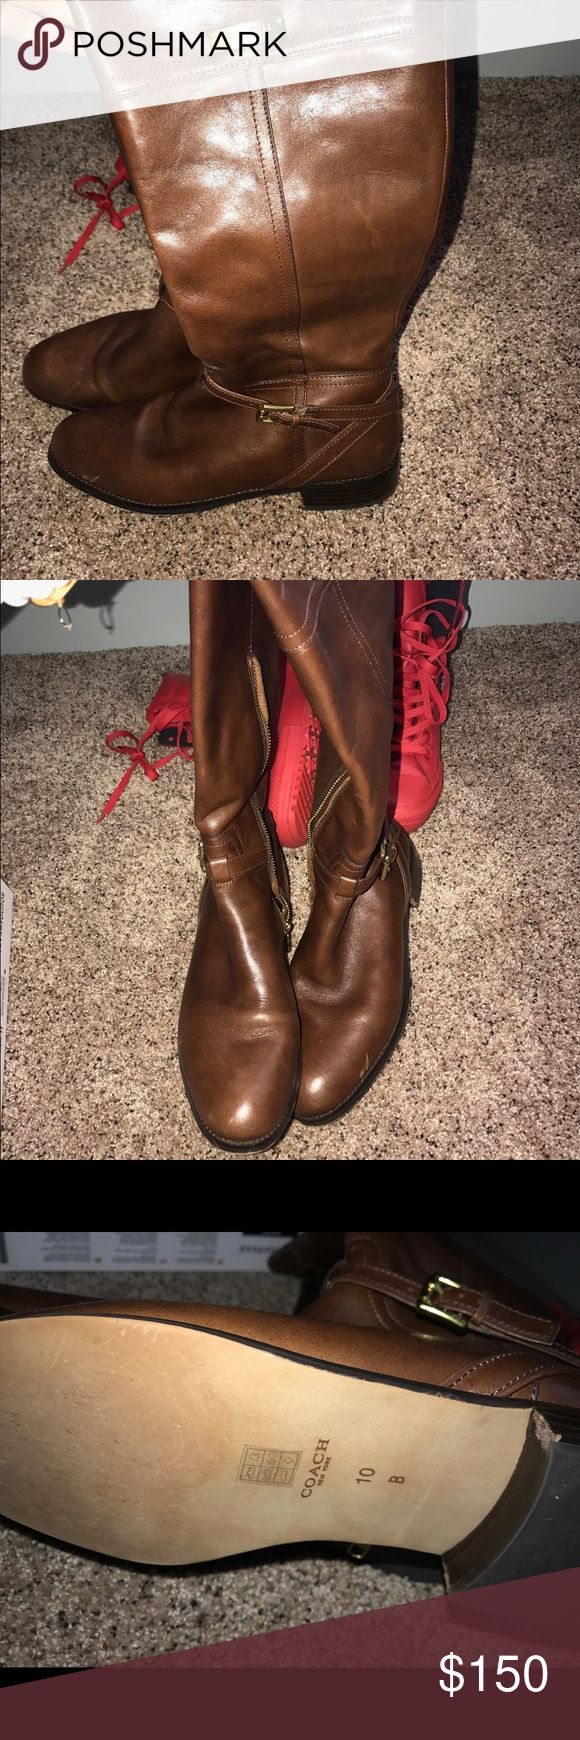 COACH boots brown coach boots worn once Coach Shoes Heeled Boots